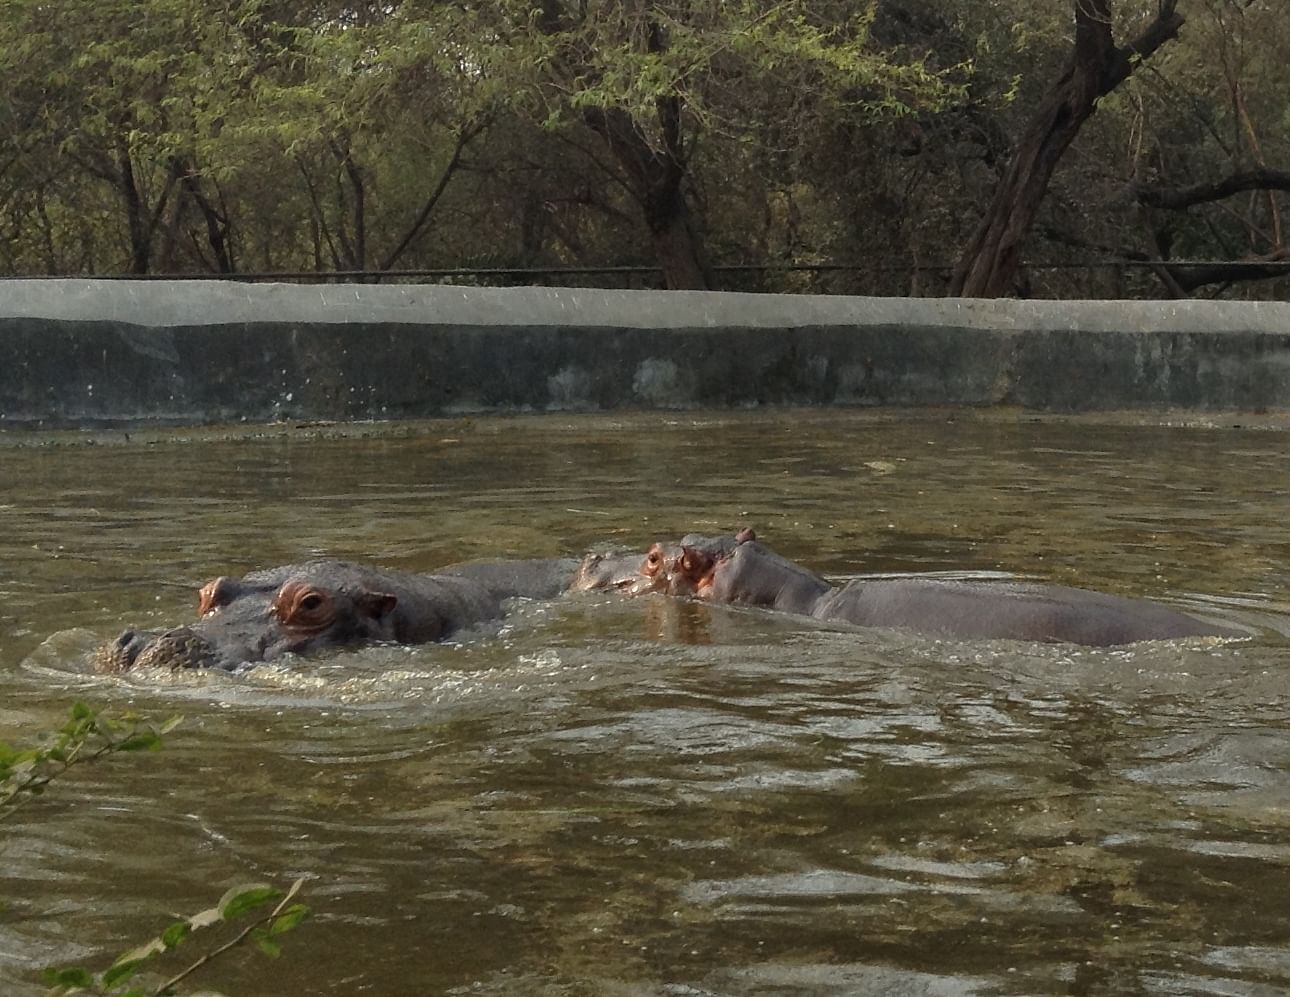 The Hippopotomus